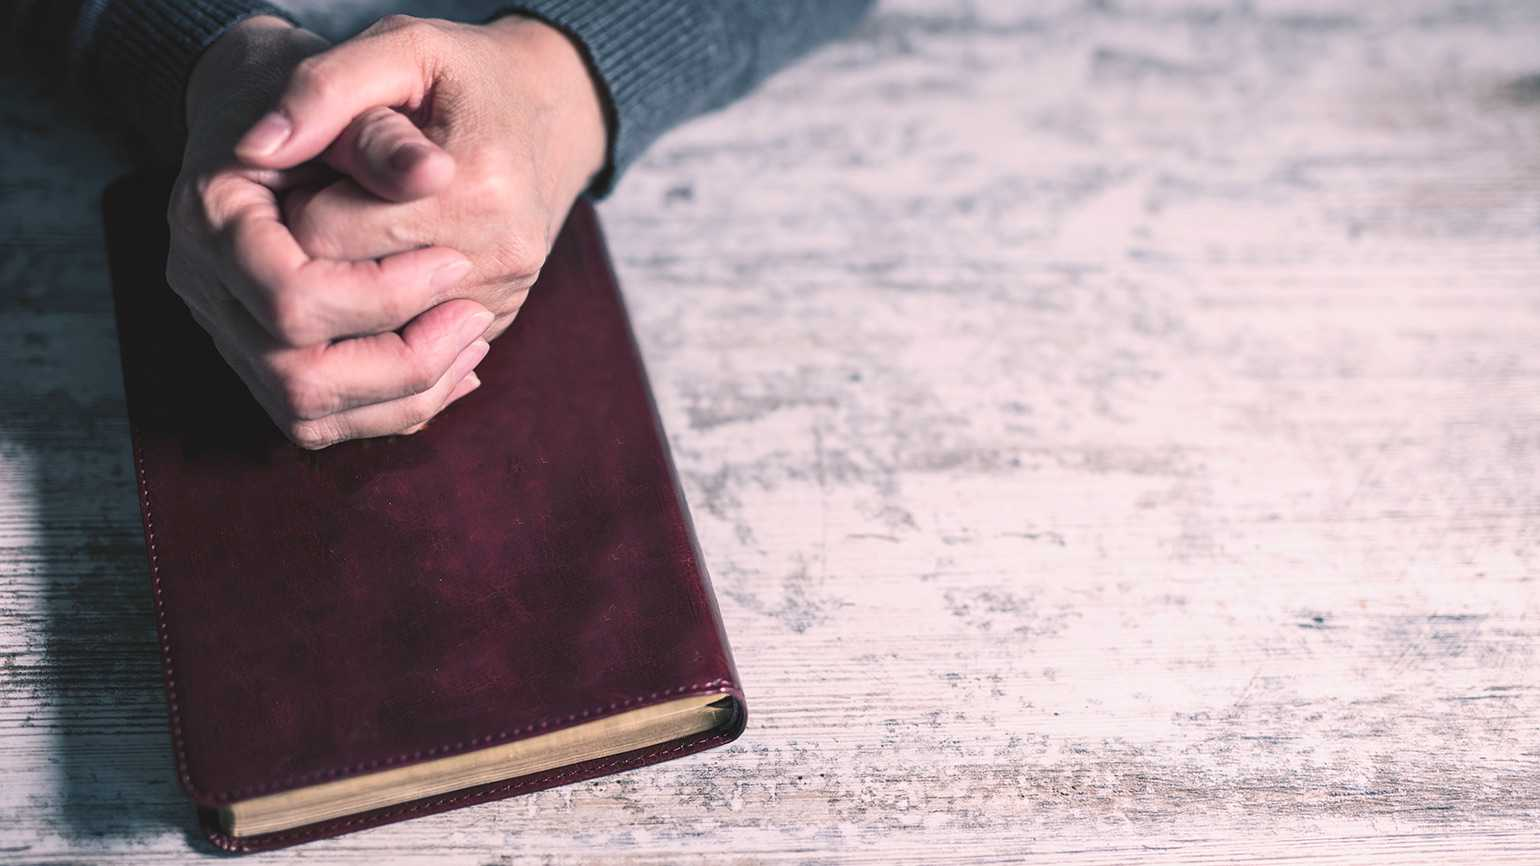 A man's hands rest in prayer upon a Bible